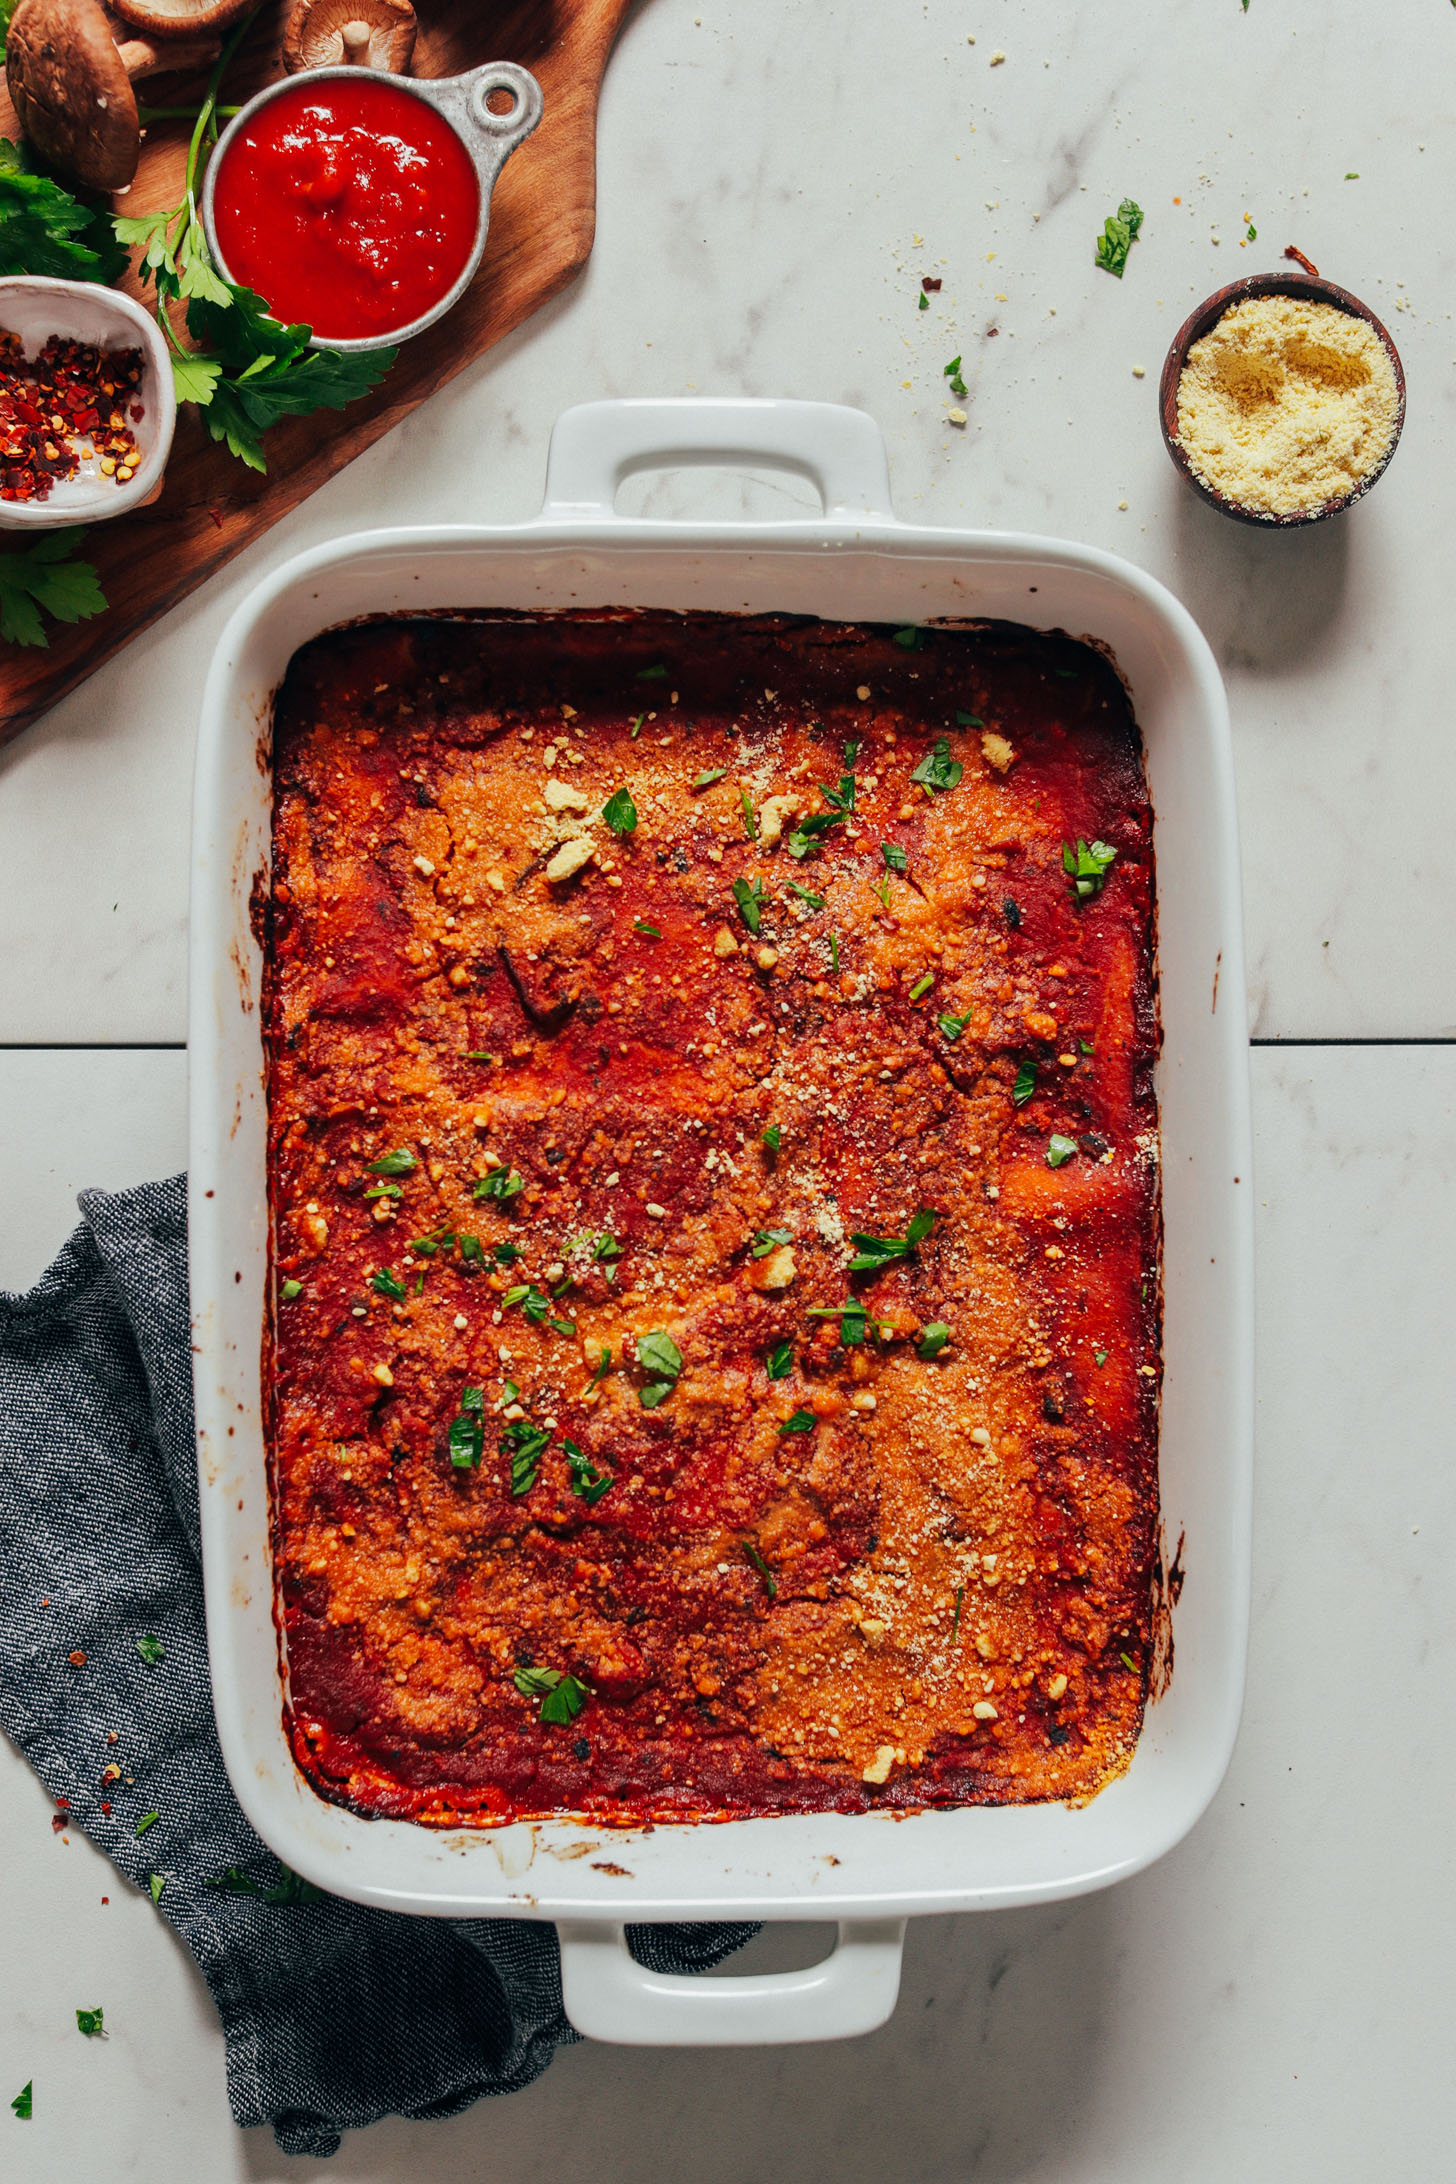 Baking pan filled with a batch of our Easy Vegan Lasagna recipe